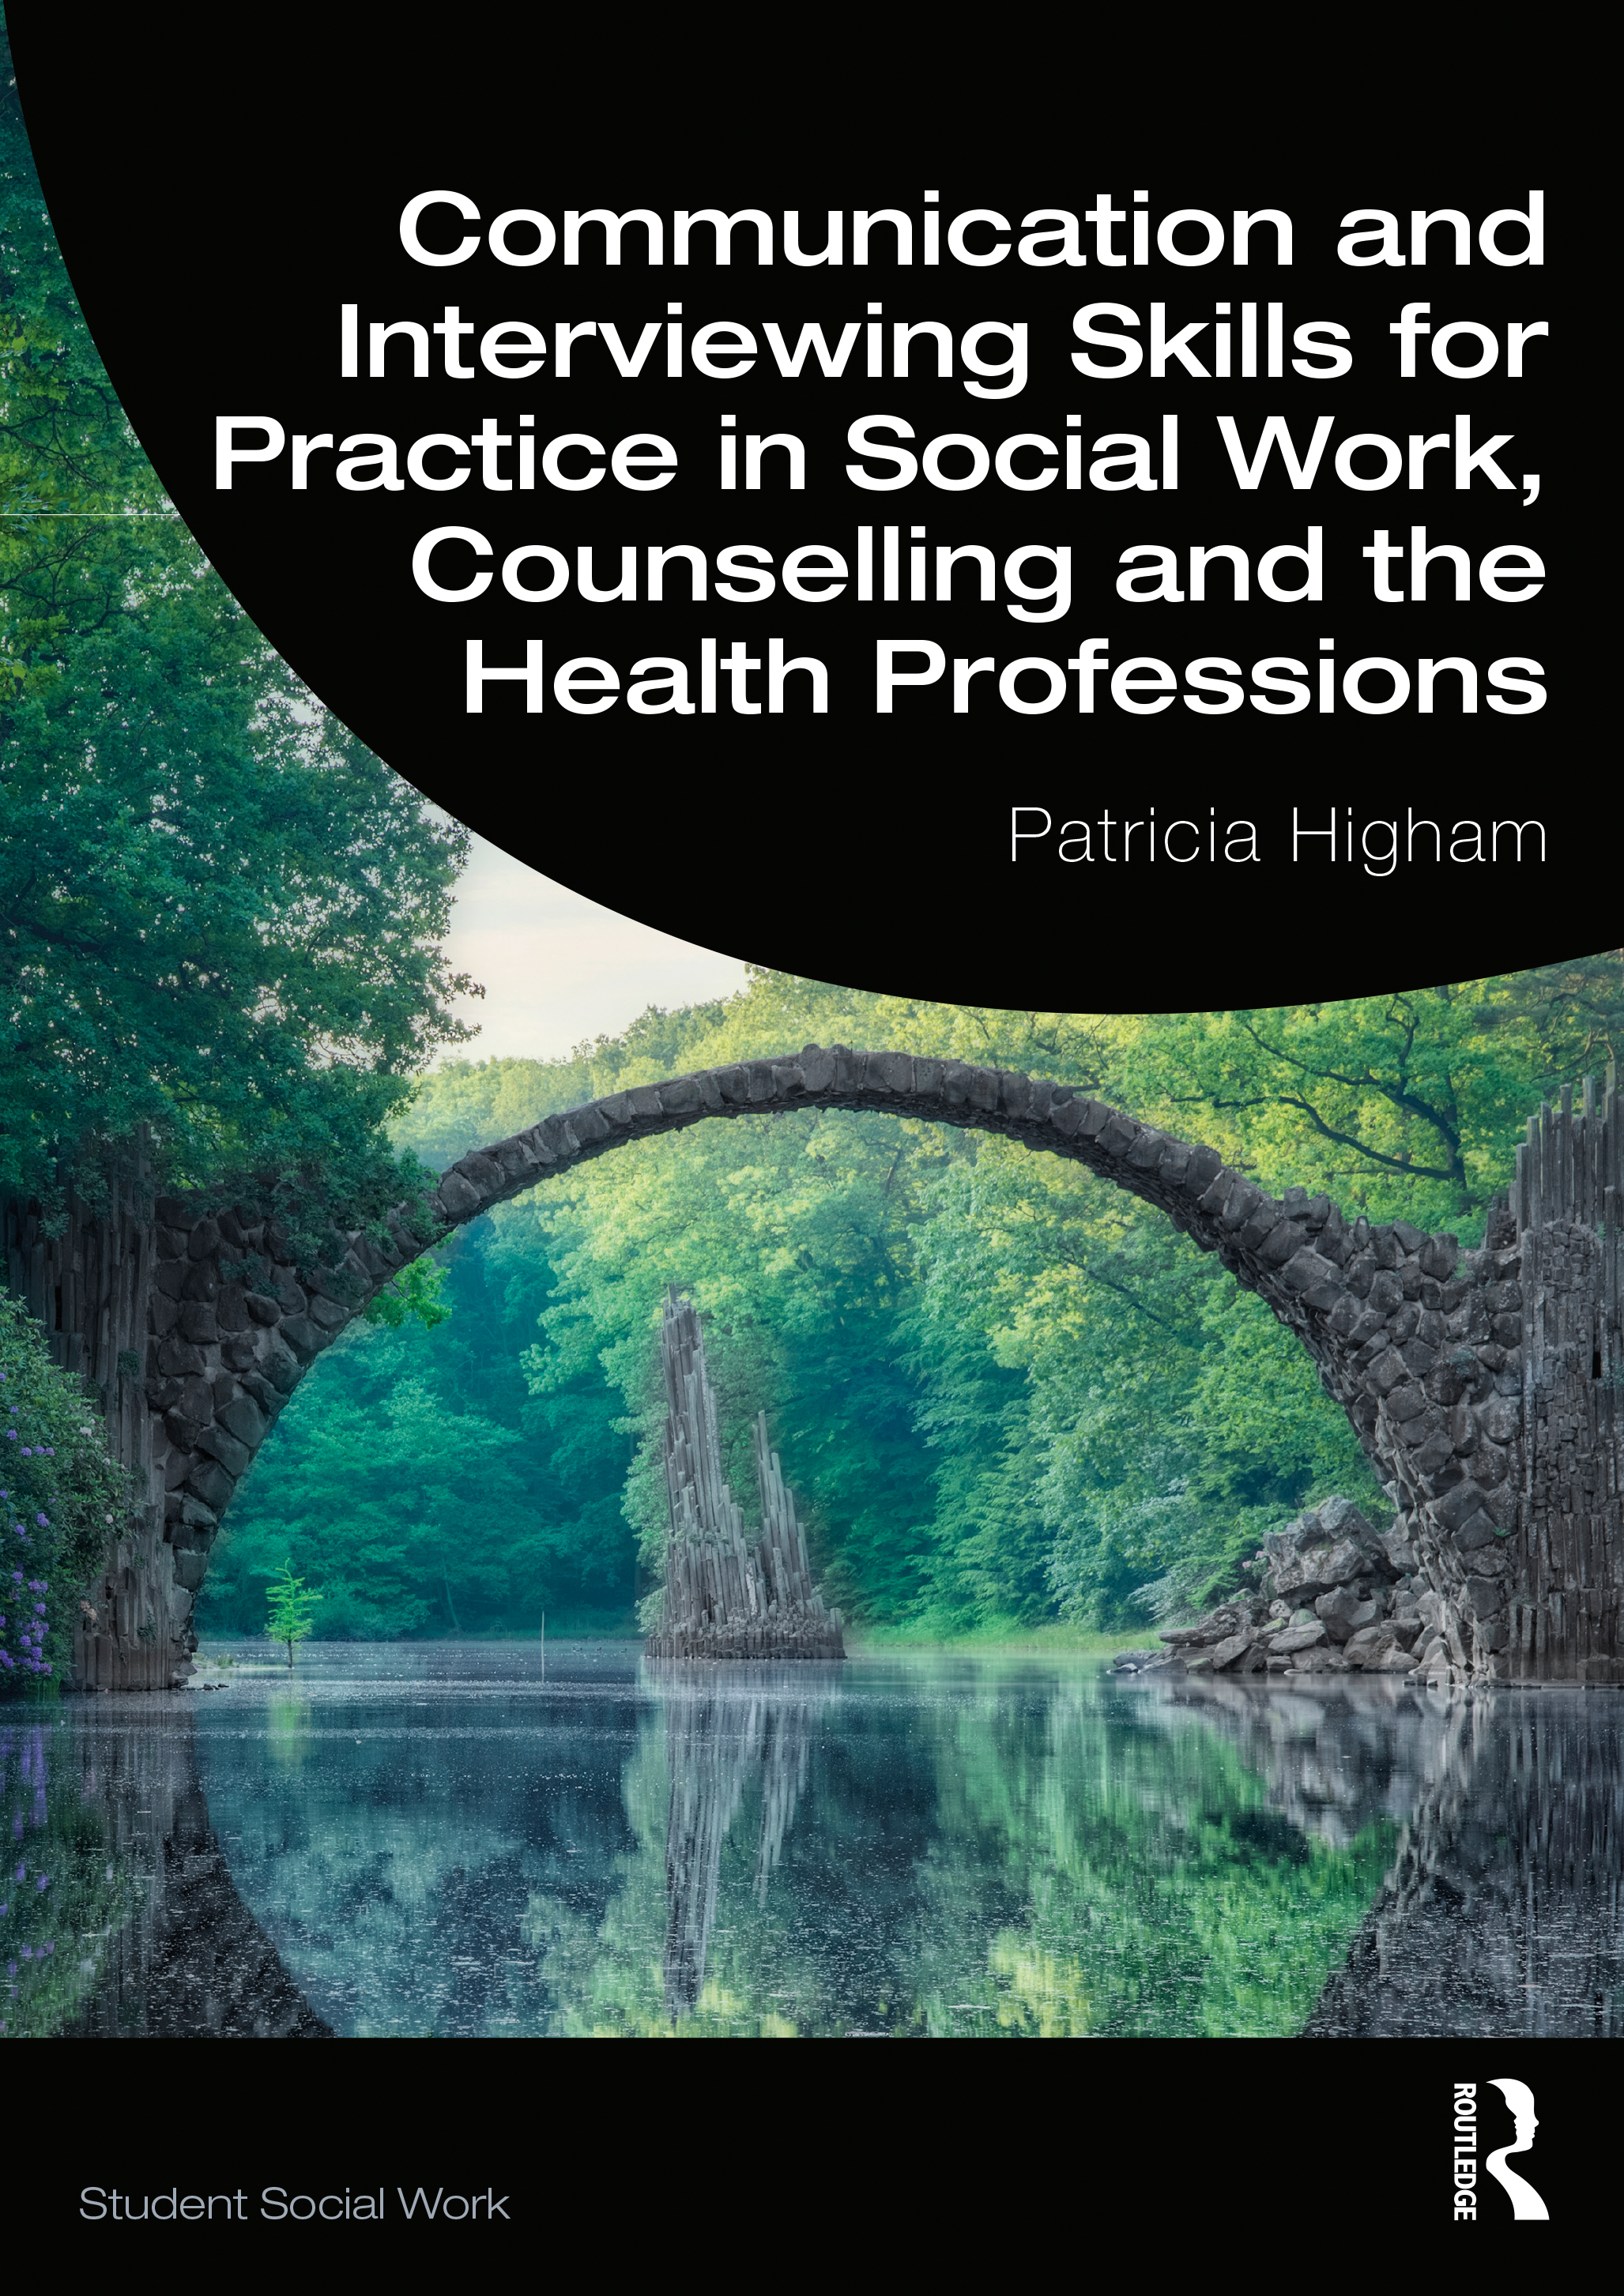 Communication and Interviewing Skills for Practice in Social Work, Counselling and the Health Professions book cover